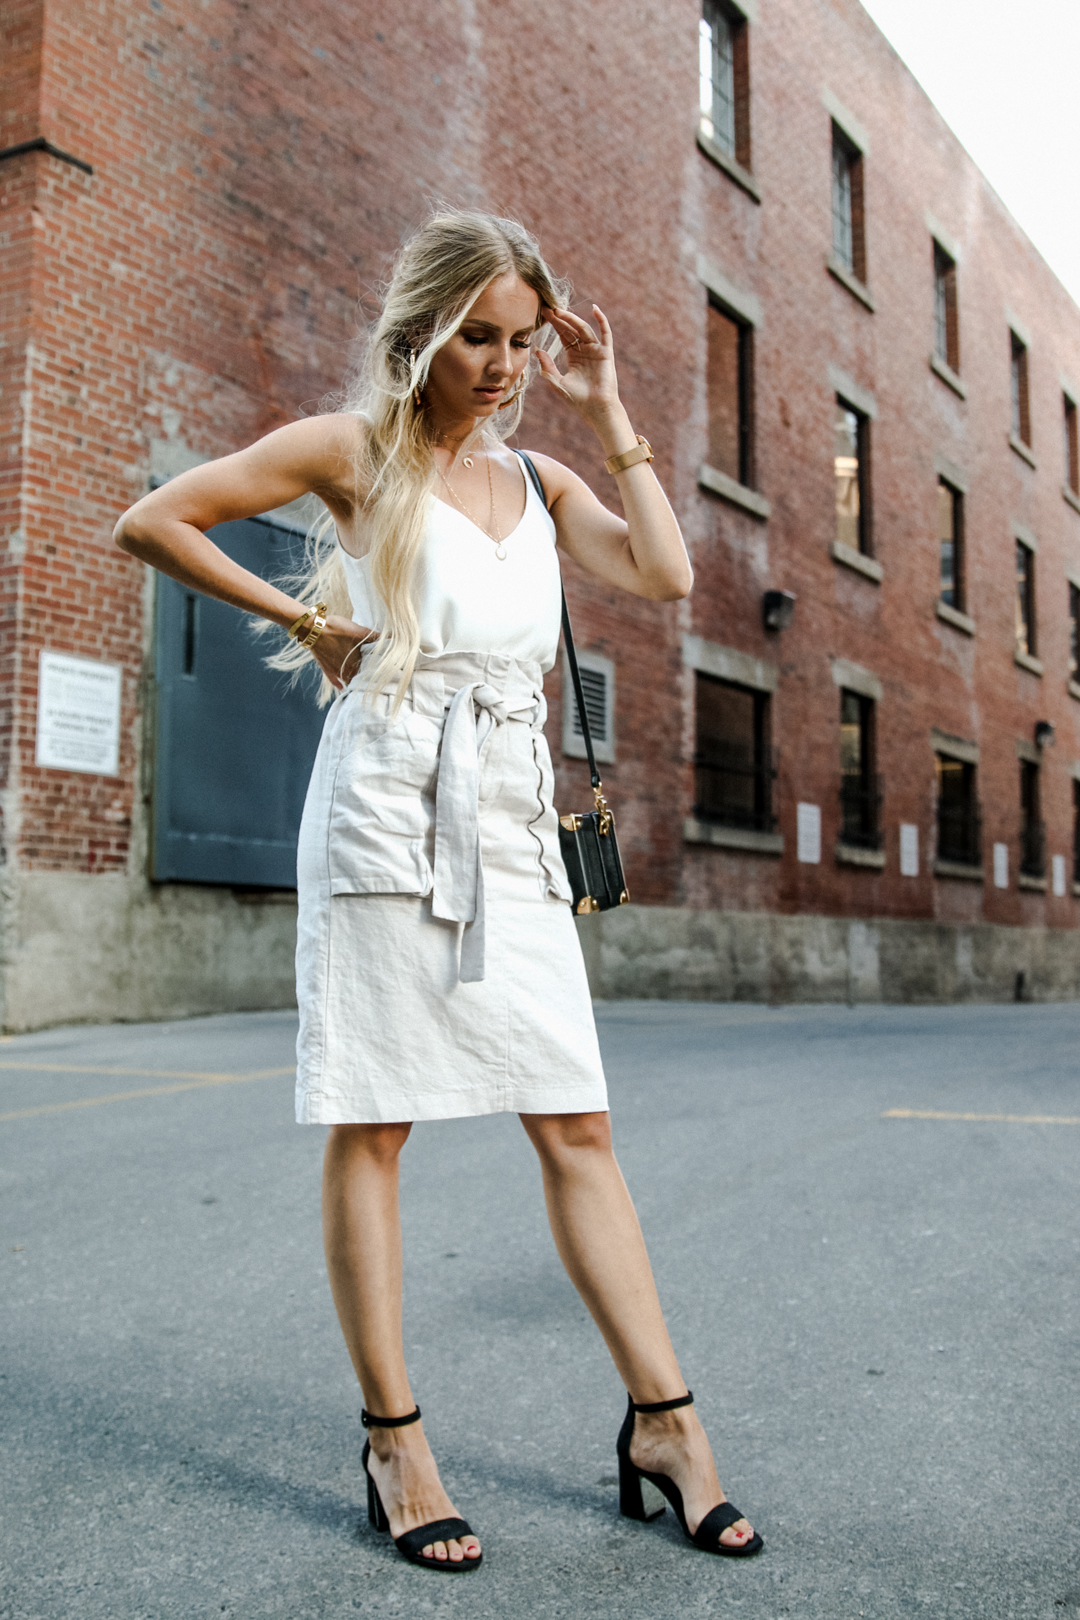 df6cab6898c End of summer outfit neutrals h m linen skirt h m white satin top bershka  sandals-6